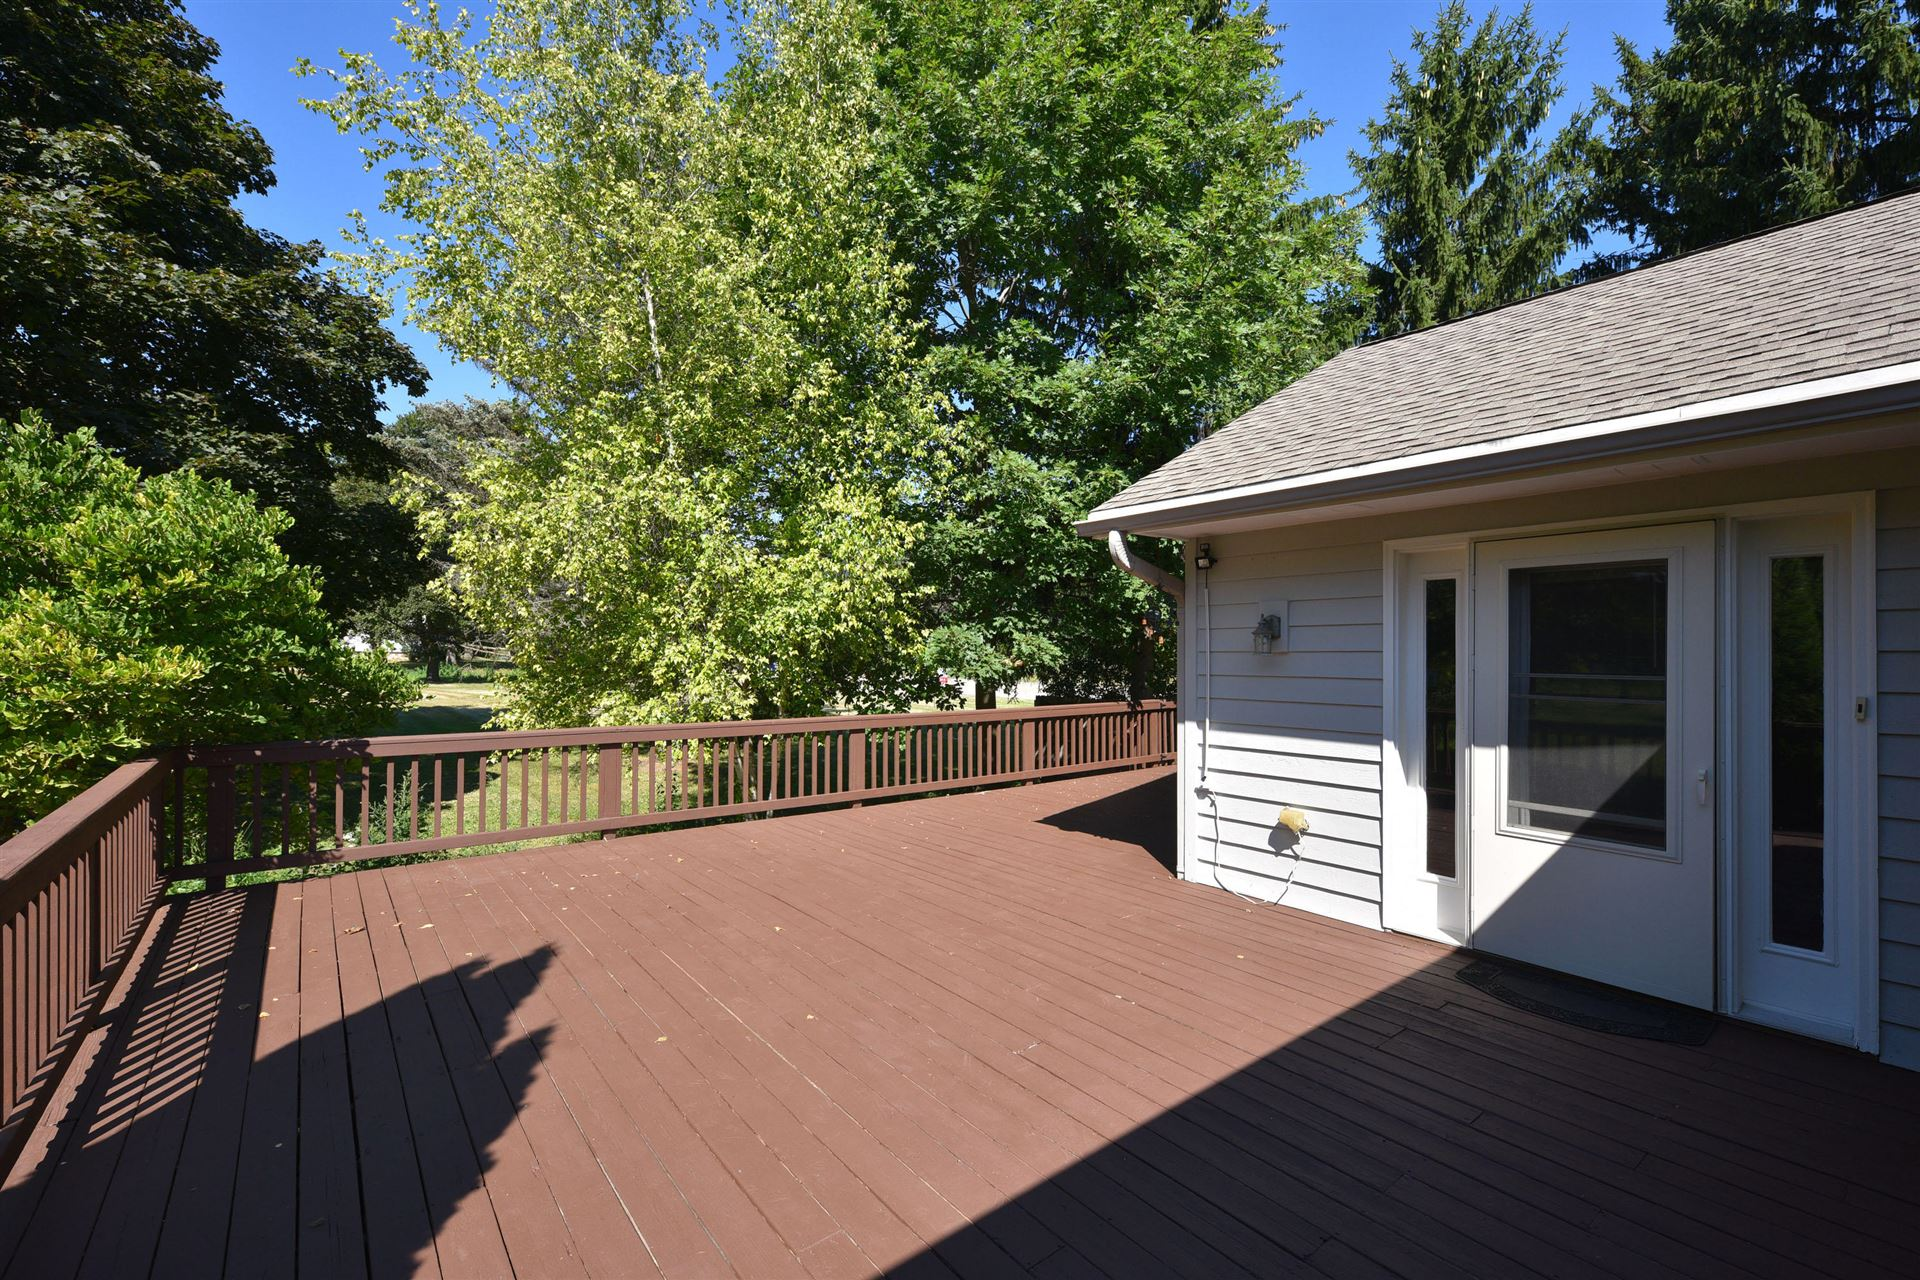 8801 W Mequon Rd, Mequon, WI 53097 - #: 1704717